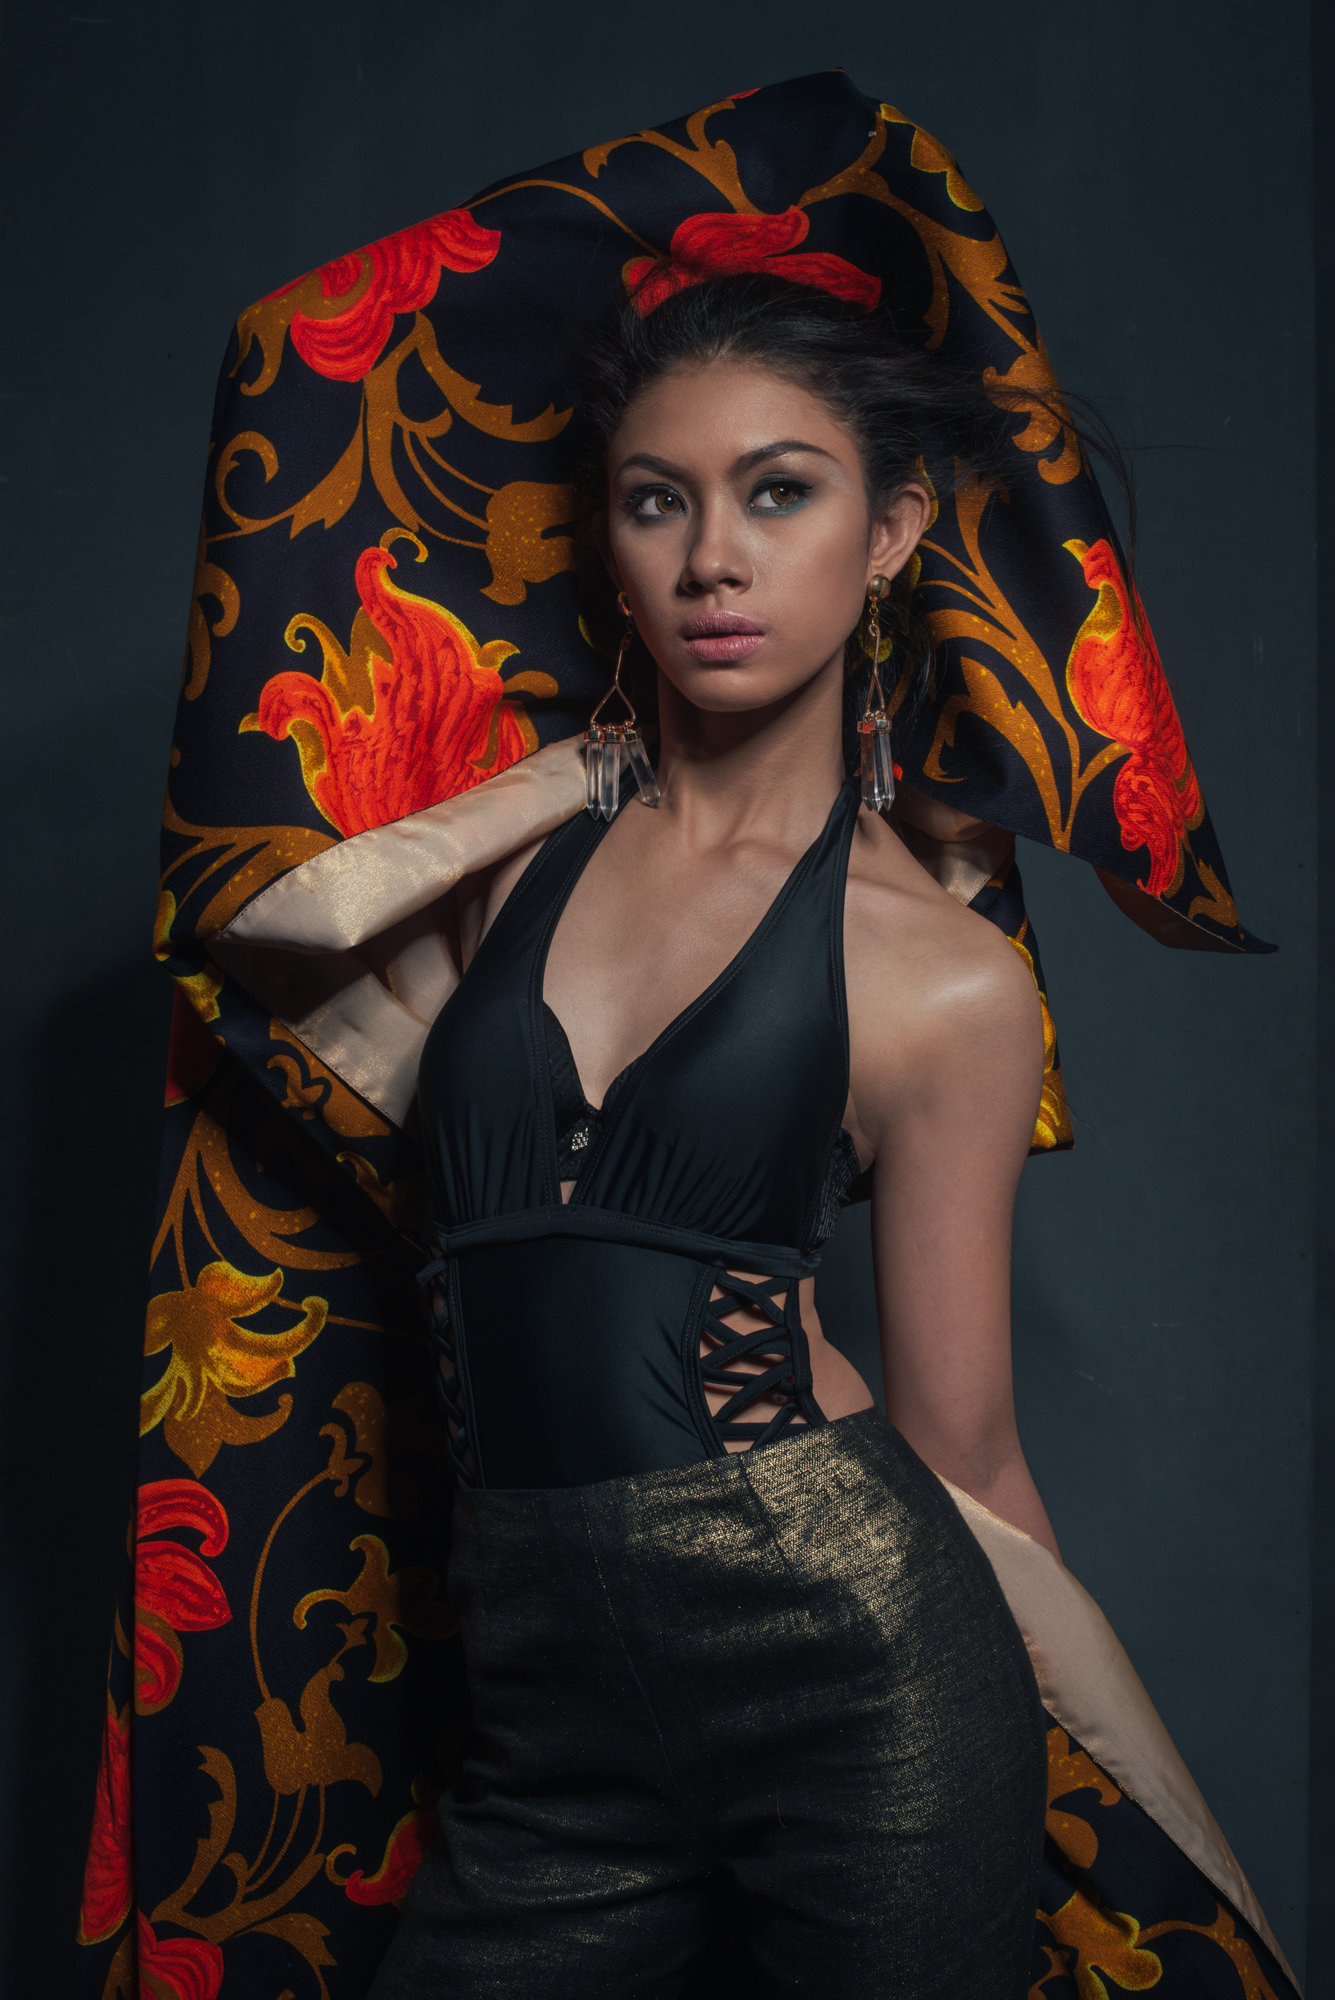 Patrick-Rivera-Photographer-Khiarrah-Almeda-Danilo-Franco-Tony-Guy-patrickrivera (7 of 8).jpg